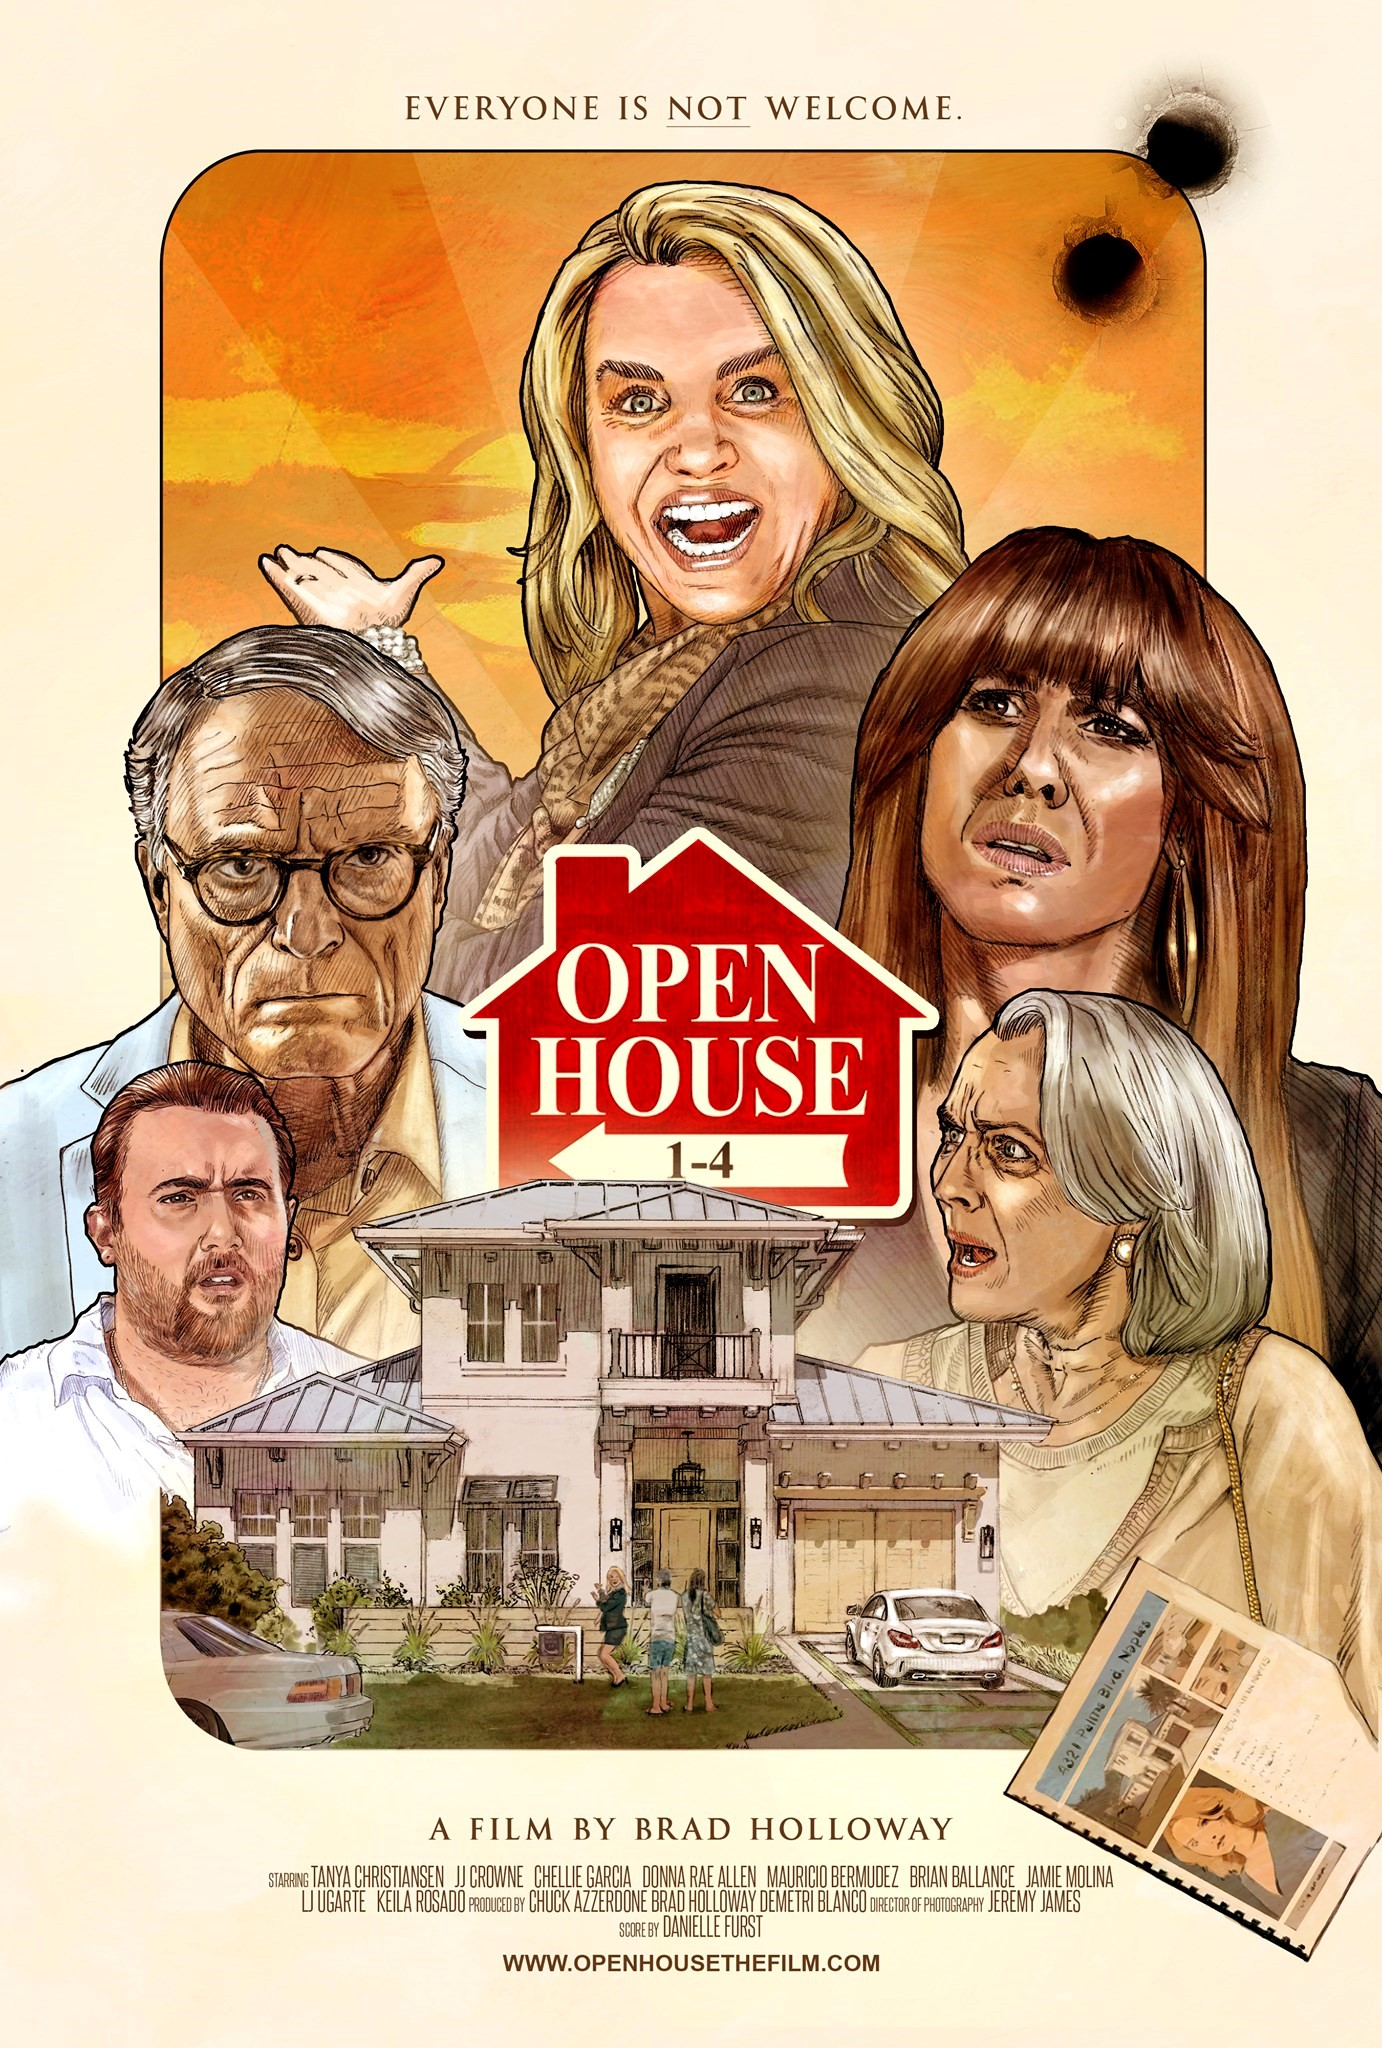 Dark comedy short Open House 1-4 spotlighting the cutthroat real estate industry launches on Amazon Prime